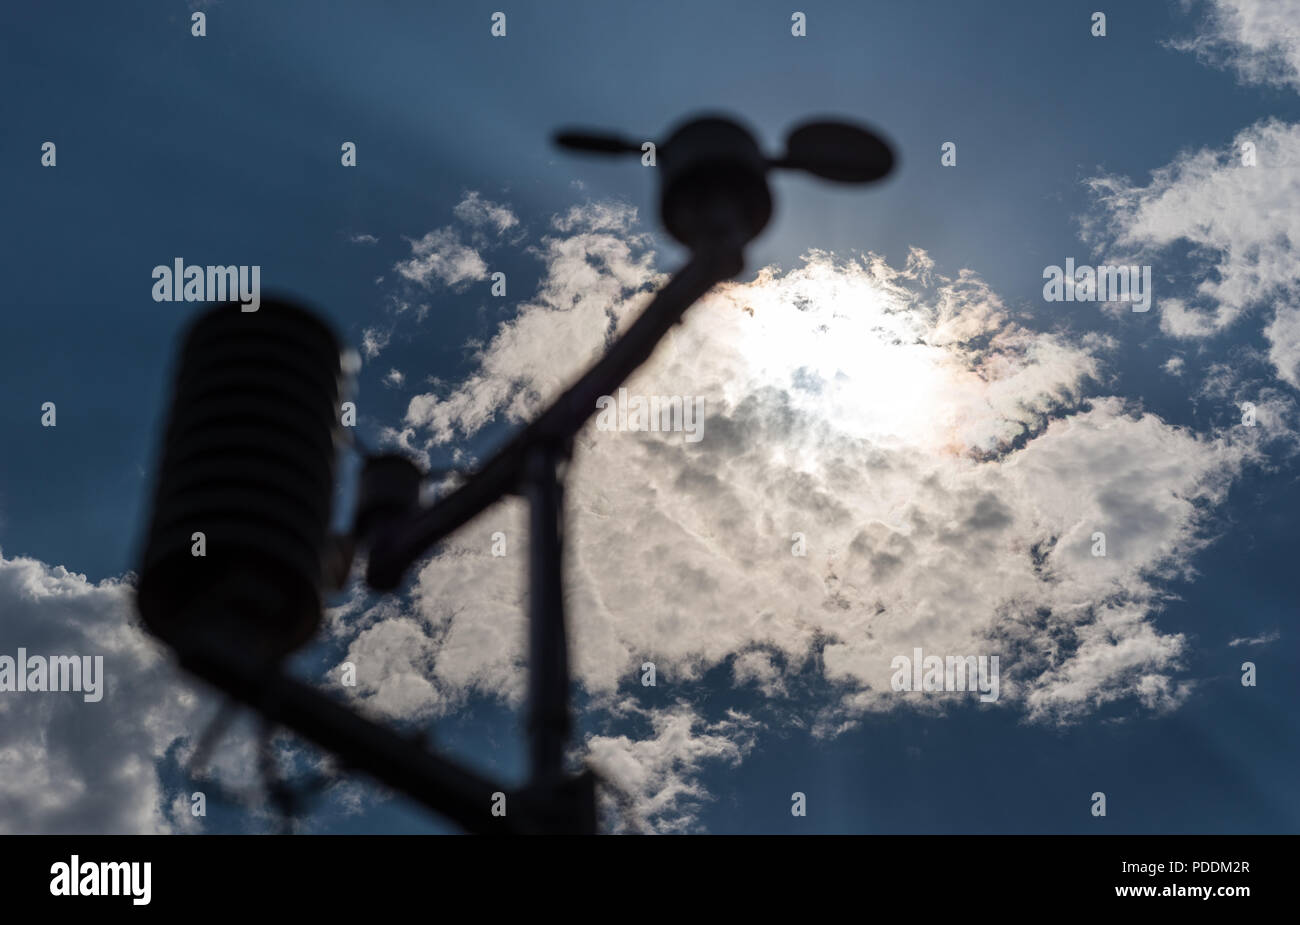 Home weather station on a background of blue sky with the sun behind the clouds. Measurement of temperature, humidity and wind direction - Stock Image